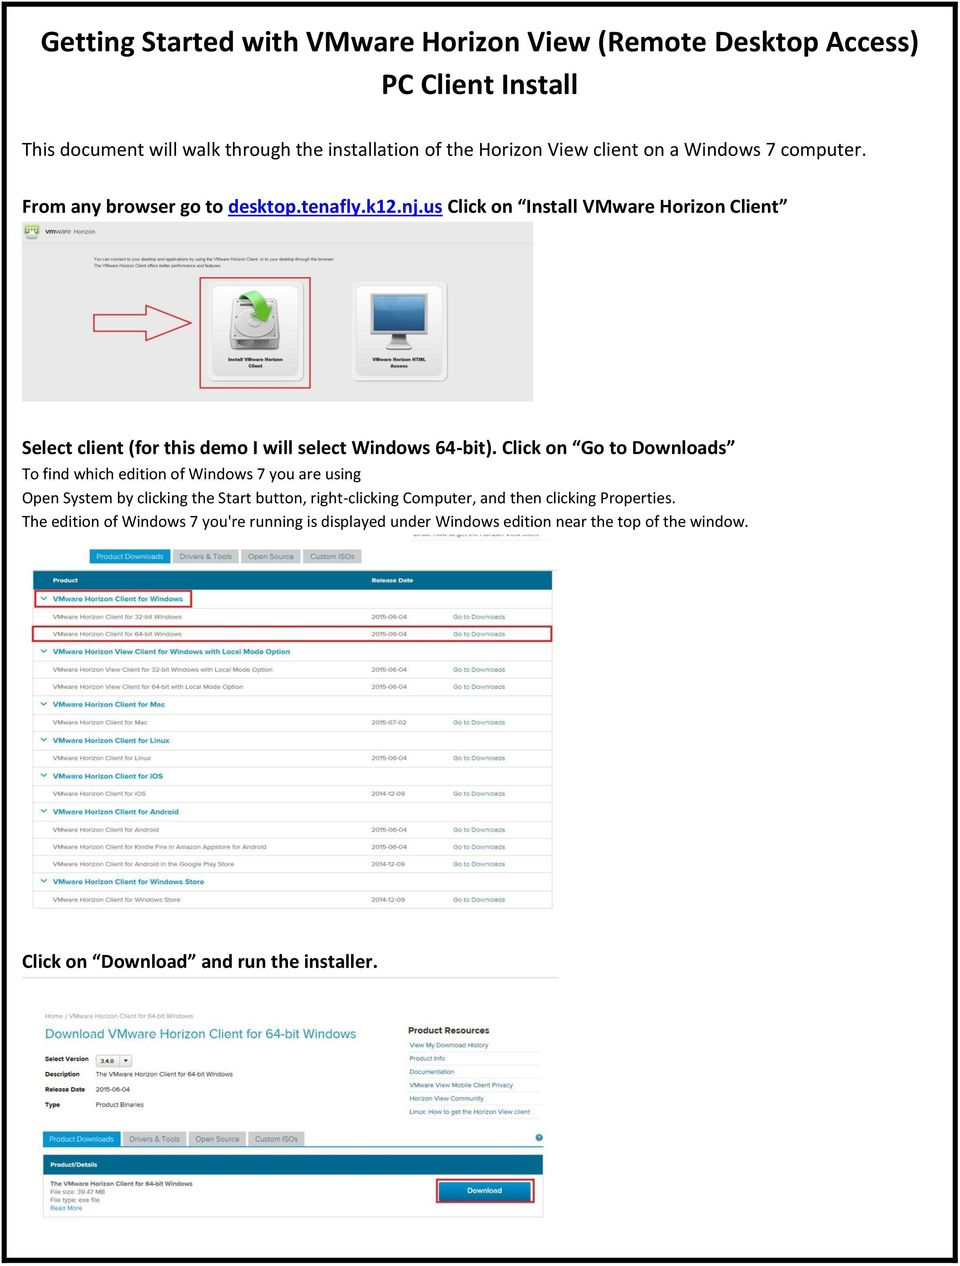 us Click on Install VMware Horizon Client Select client (for this demo I will select Windows 64-bit).